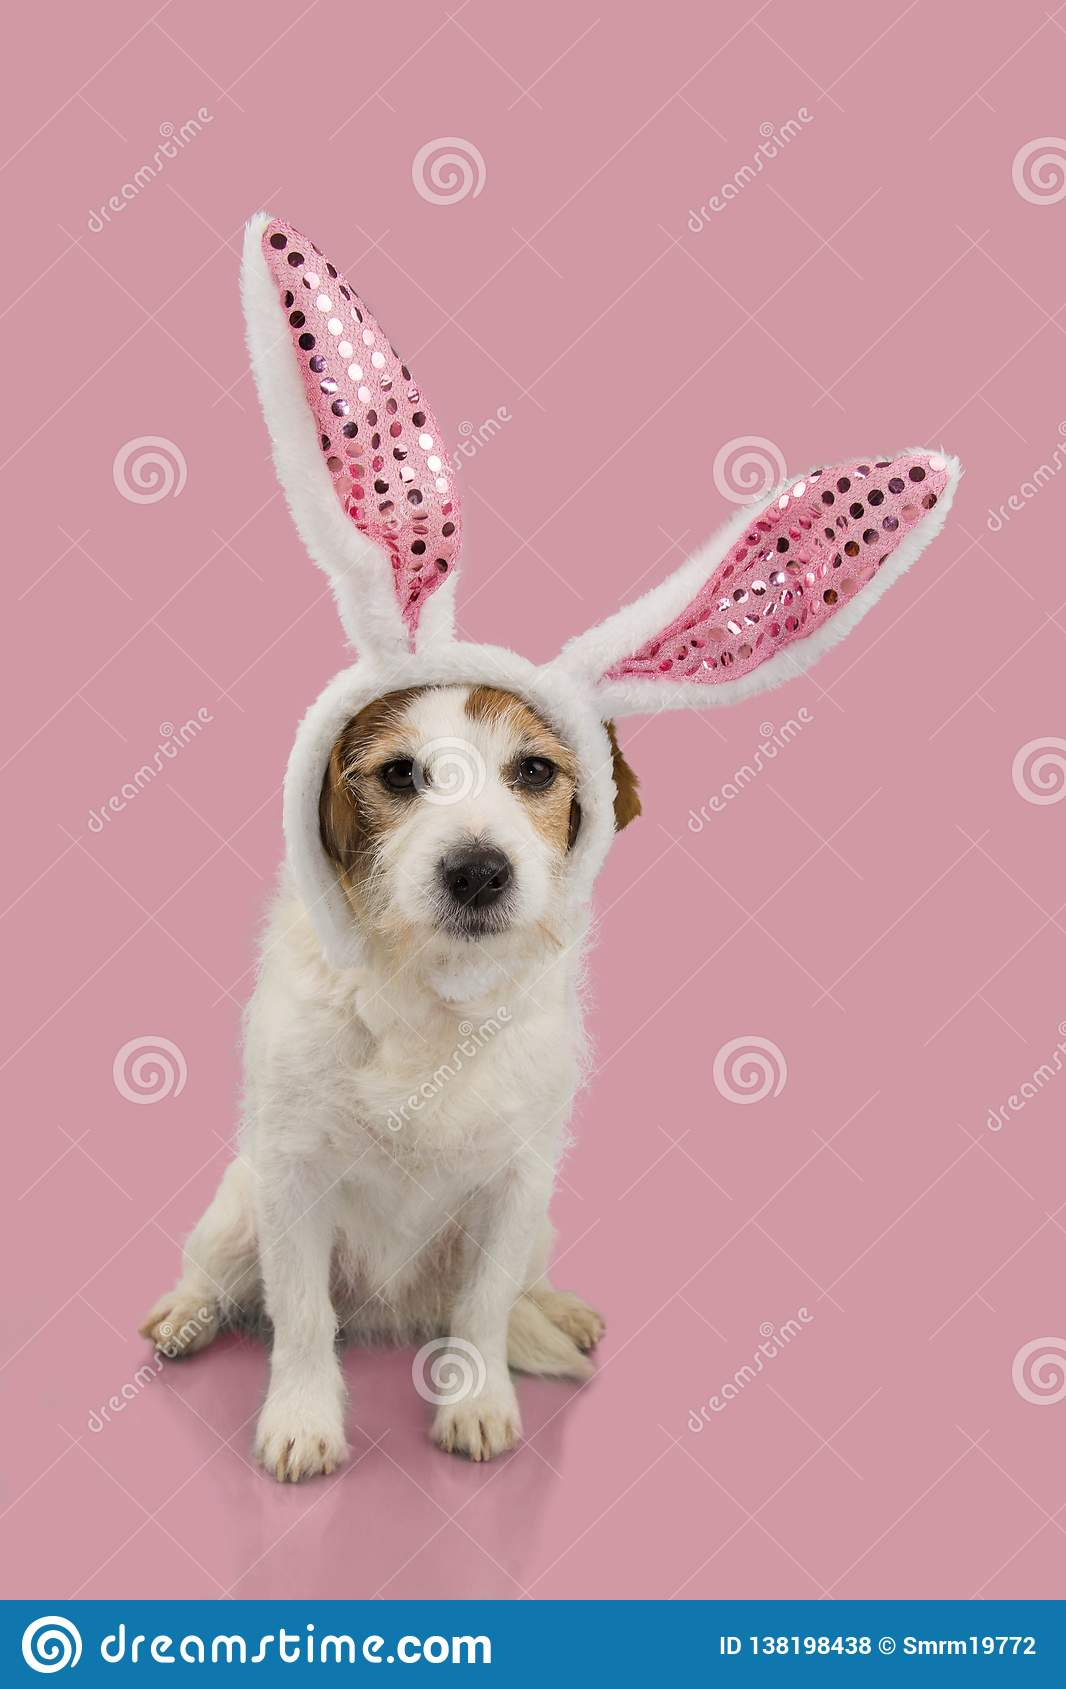 HAPPY EASTER DOG, JACK RUSSELL PUPPY DRESSED AS A BUNNY OR RABBIT, ISOLATED AGAINST PINK BACKGROUND